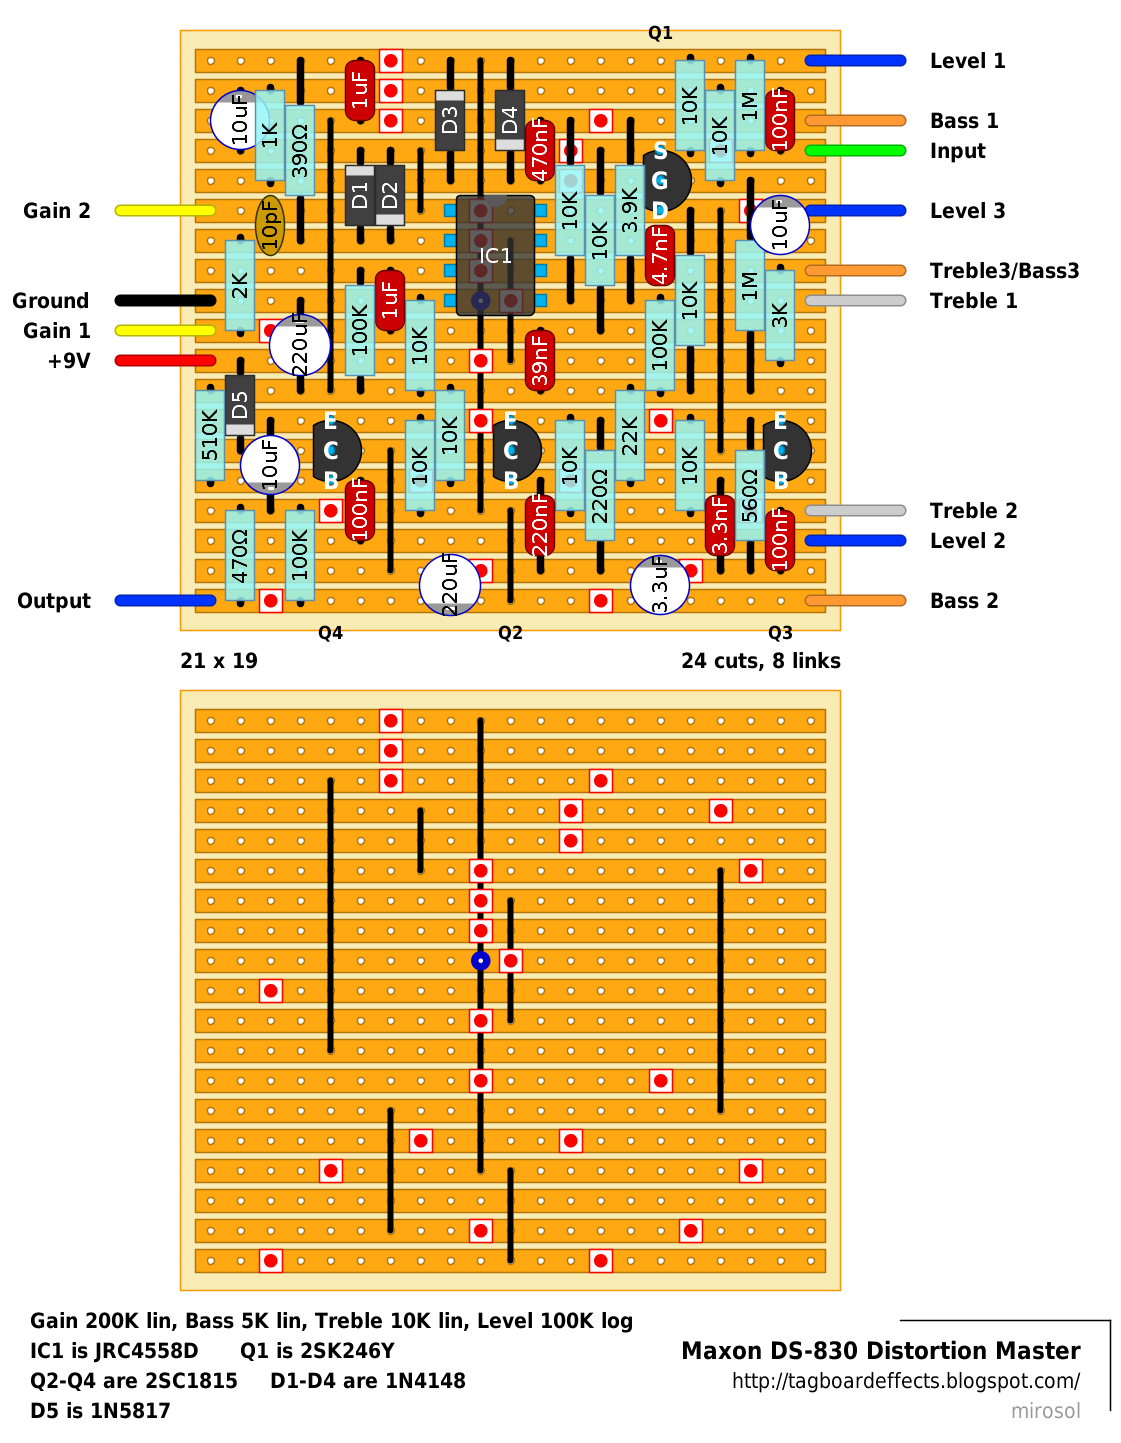 Guitar Fx Layouts Maxon Ds 830 Distortion Master 3 Way Switch Wiring Diagram Posted By Mirosol At 1012